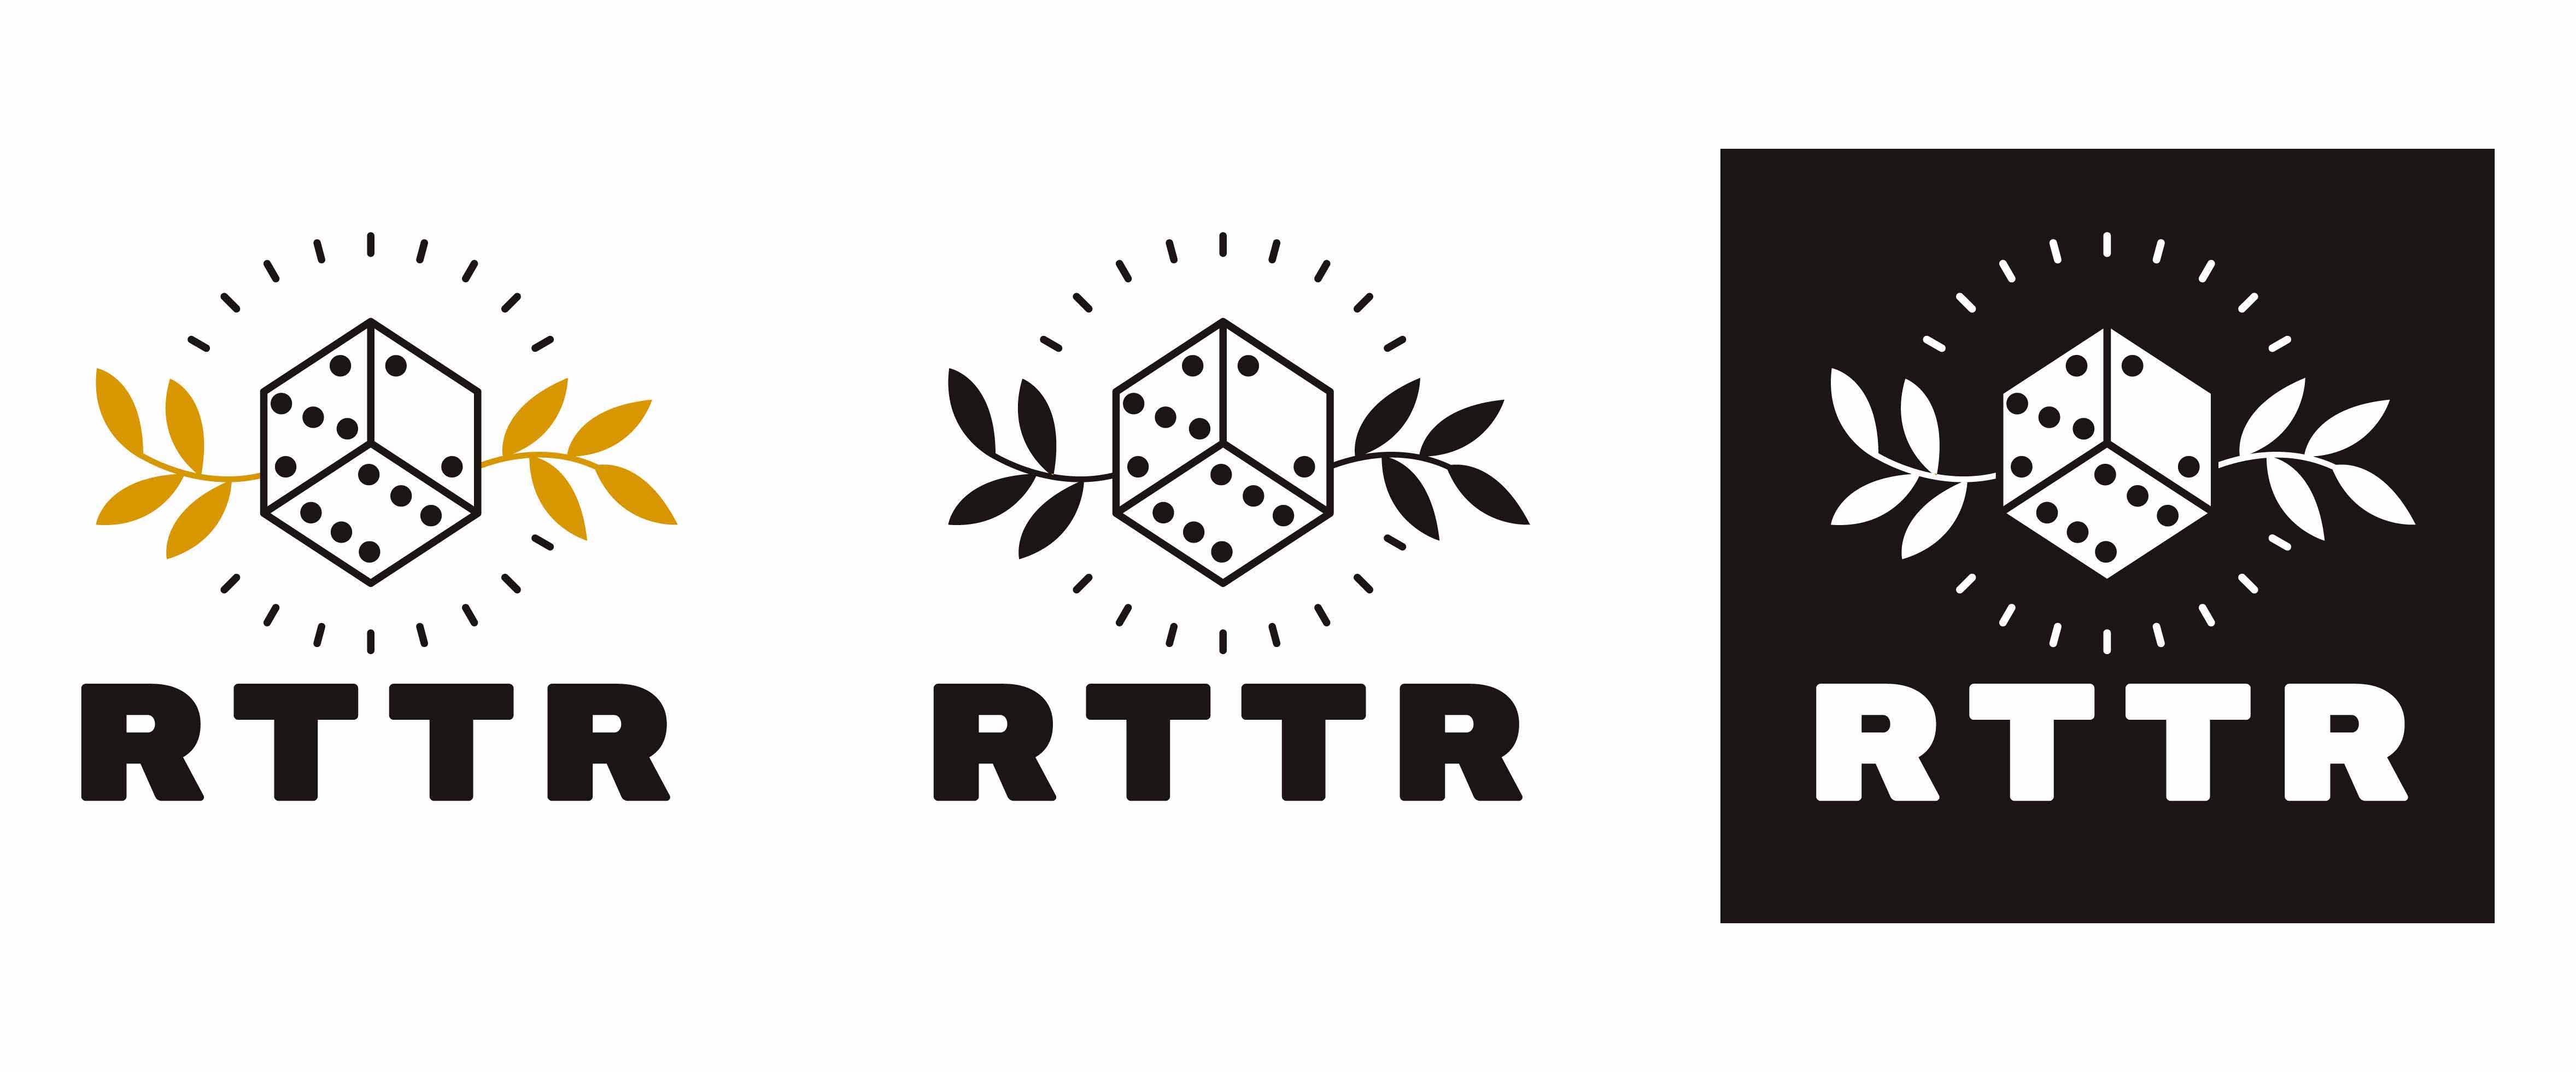 Image of the various colour variations for the new RTTR logo